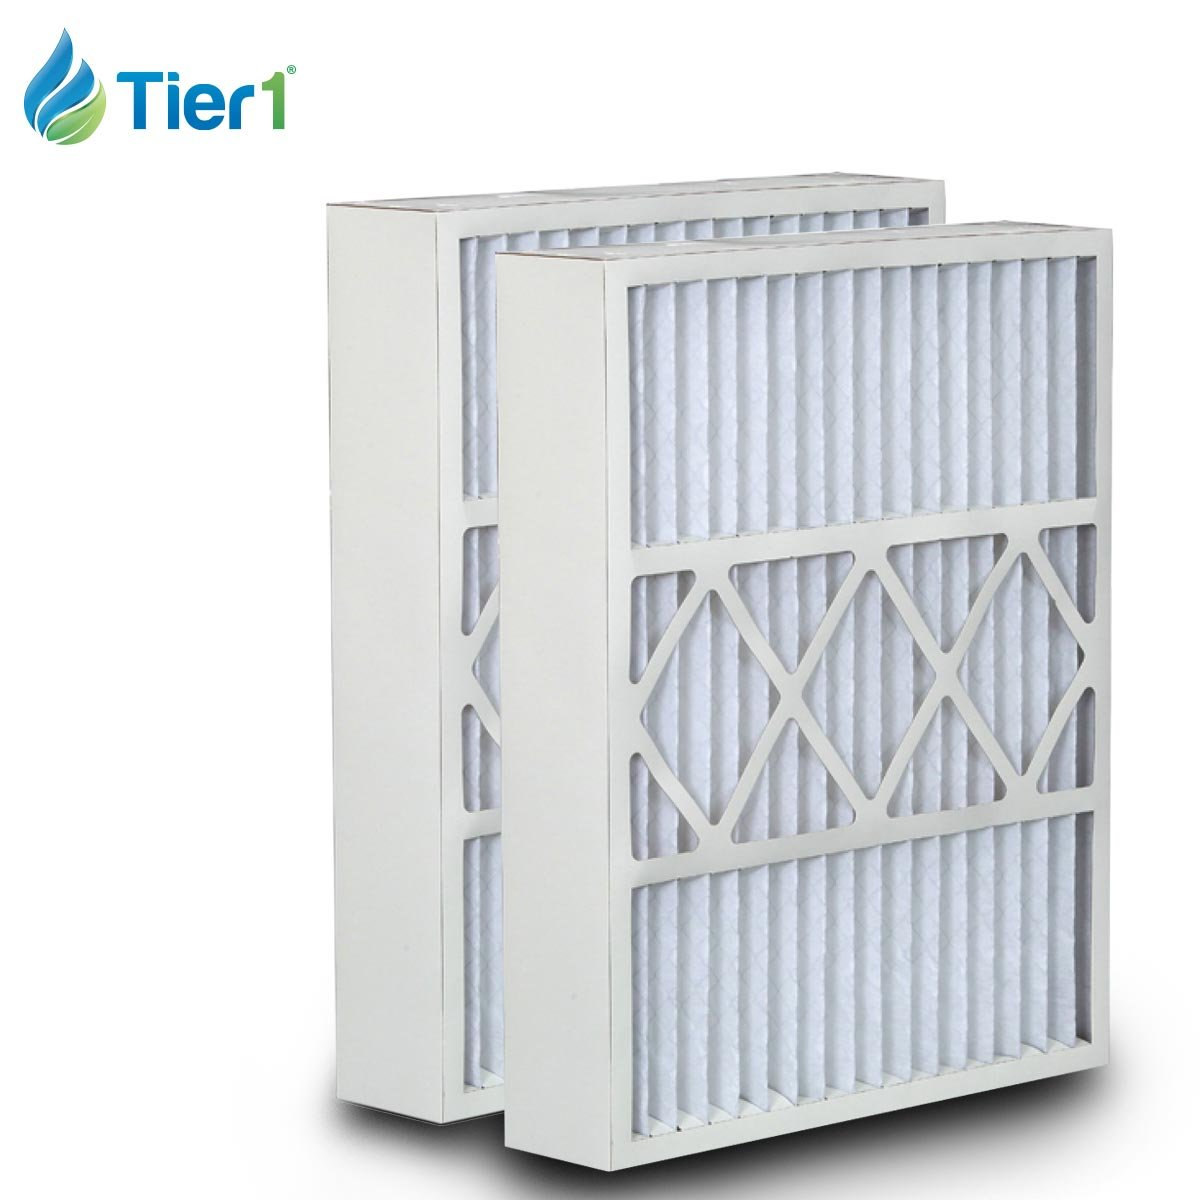 Tier1 Replacement for Comfort Plus 16x26x5 Merv 13 Air Filter 2 Pack by Tier1 (Image #1)